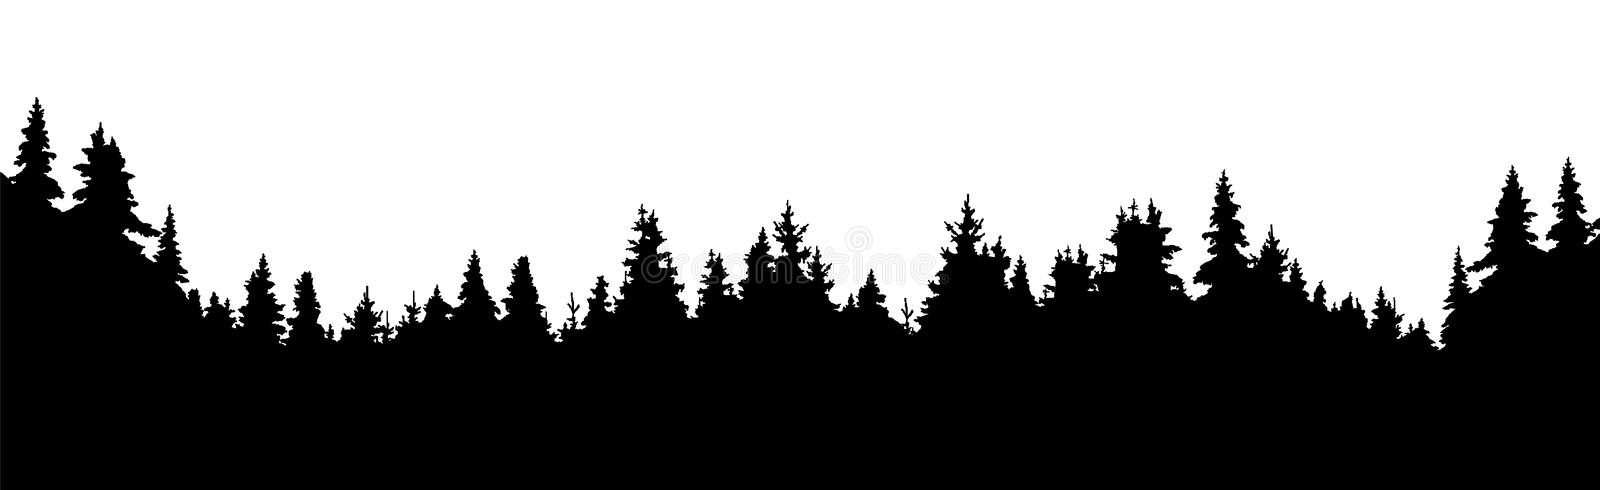 Forest of coniferous trees, silhouette vector background stock illustration